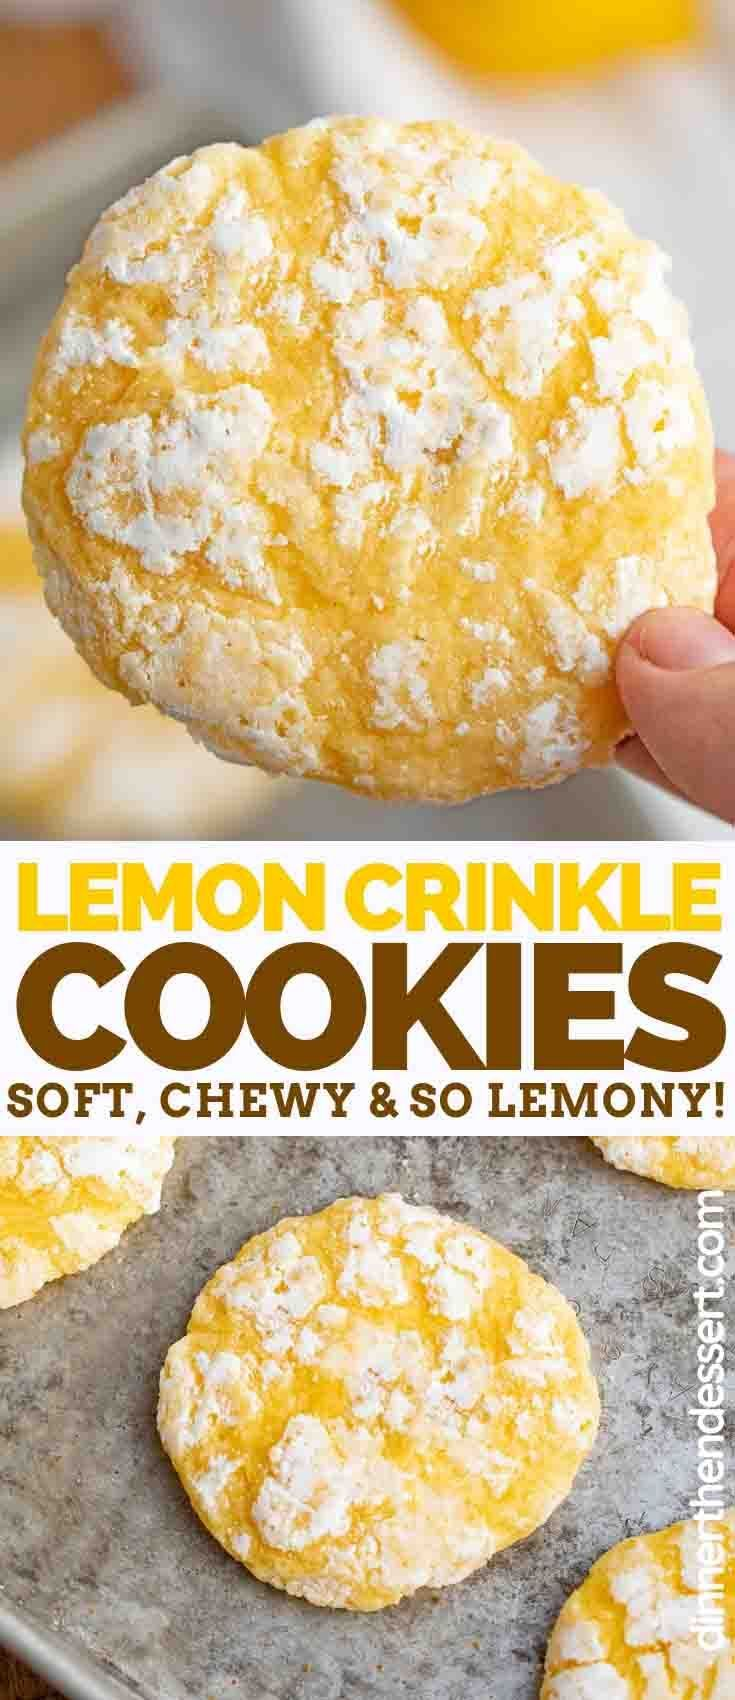 Lemon Cookies flavored with fresh lemon juice and lemon zest are soft, sweet, and PERFECT for makin